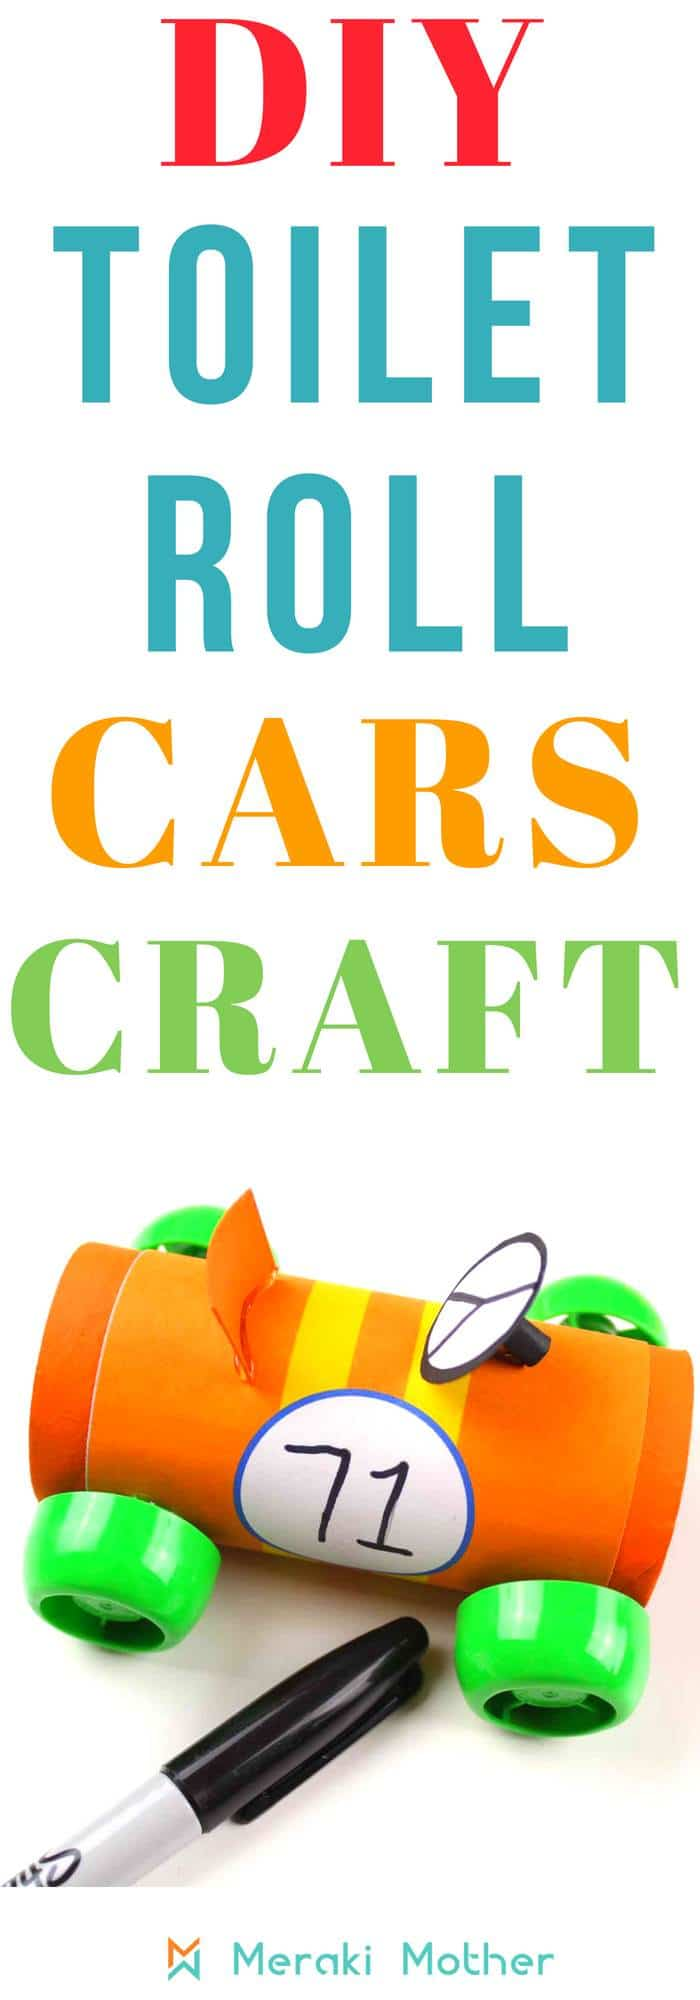 DIY toilet roll cars craft